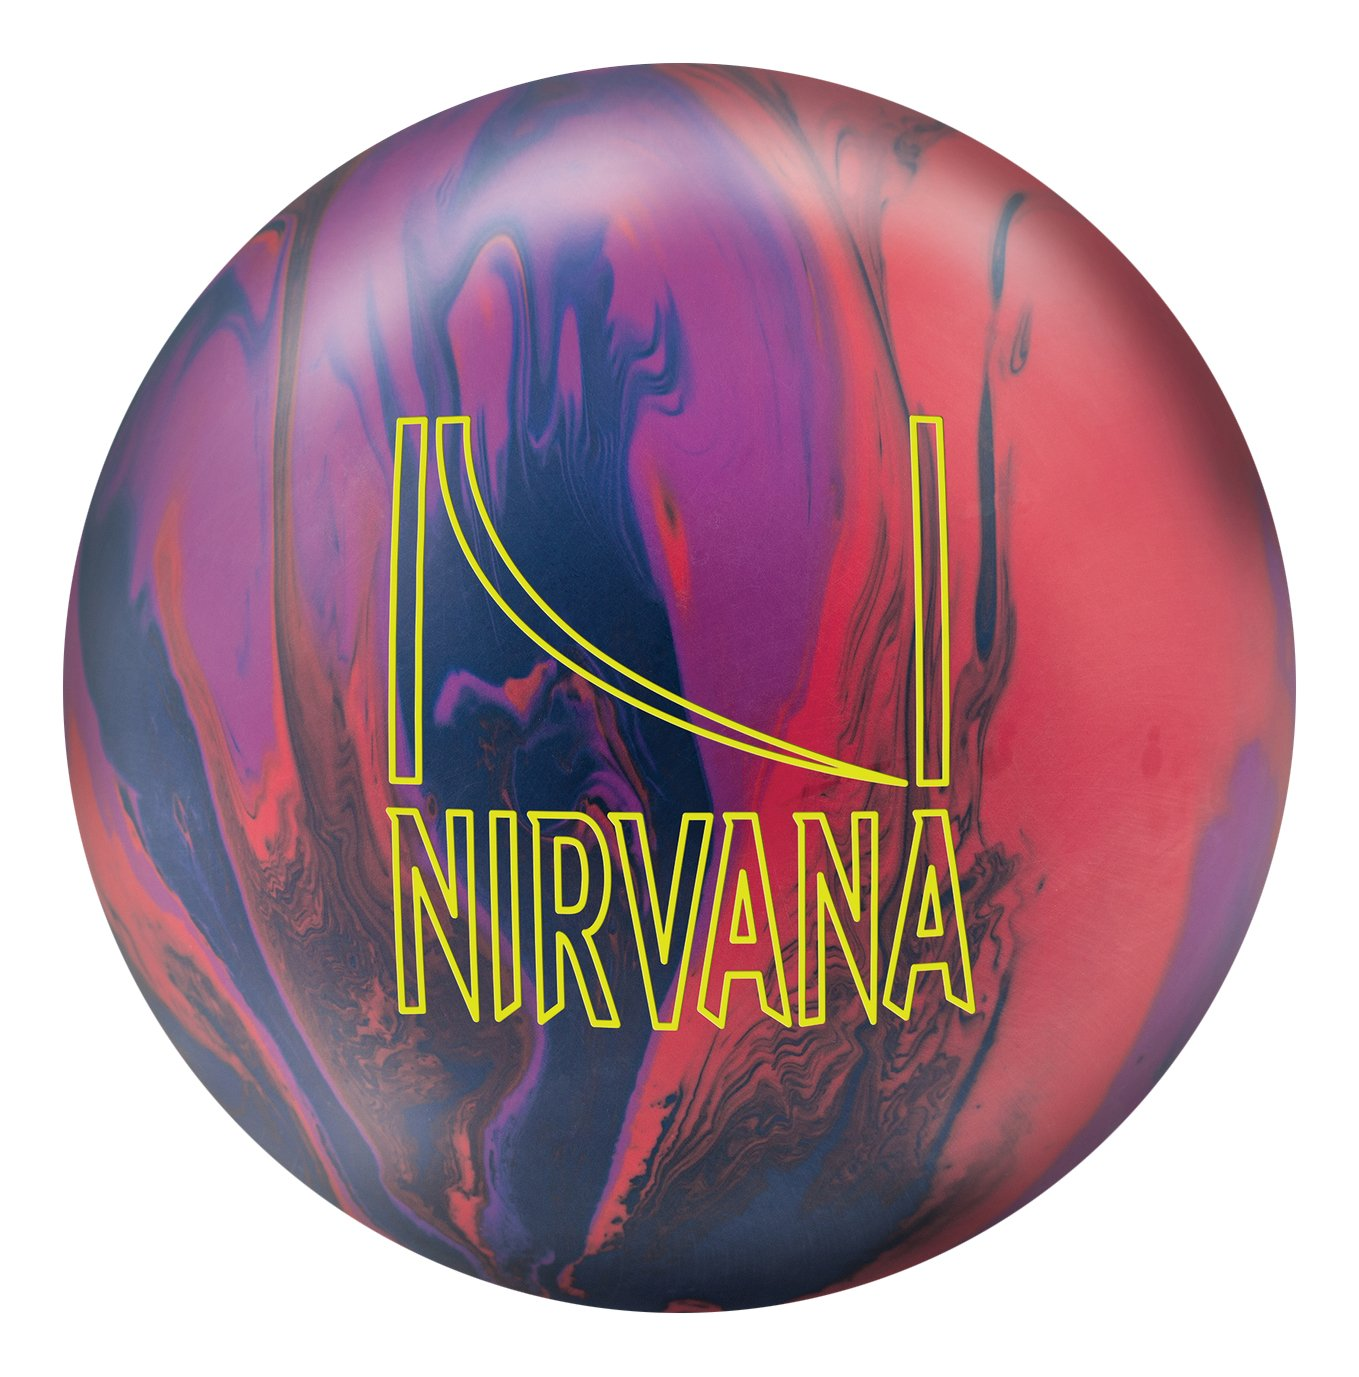 Brunswick Nirvana Bowling Ball, Red/Blue/Violet, 15 Lb